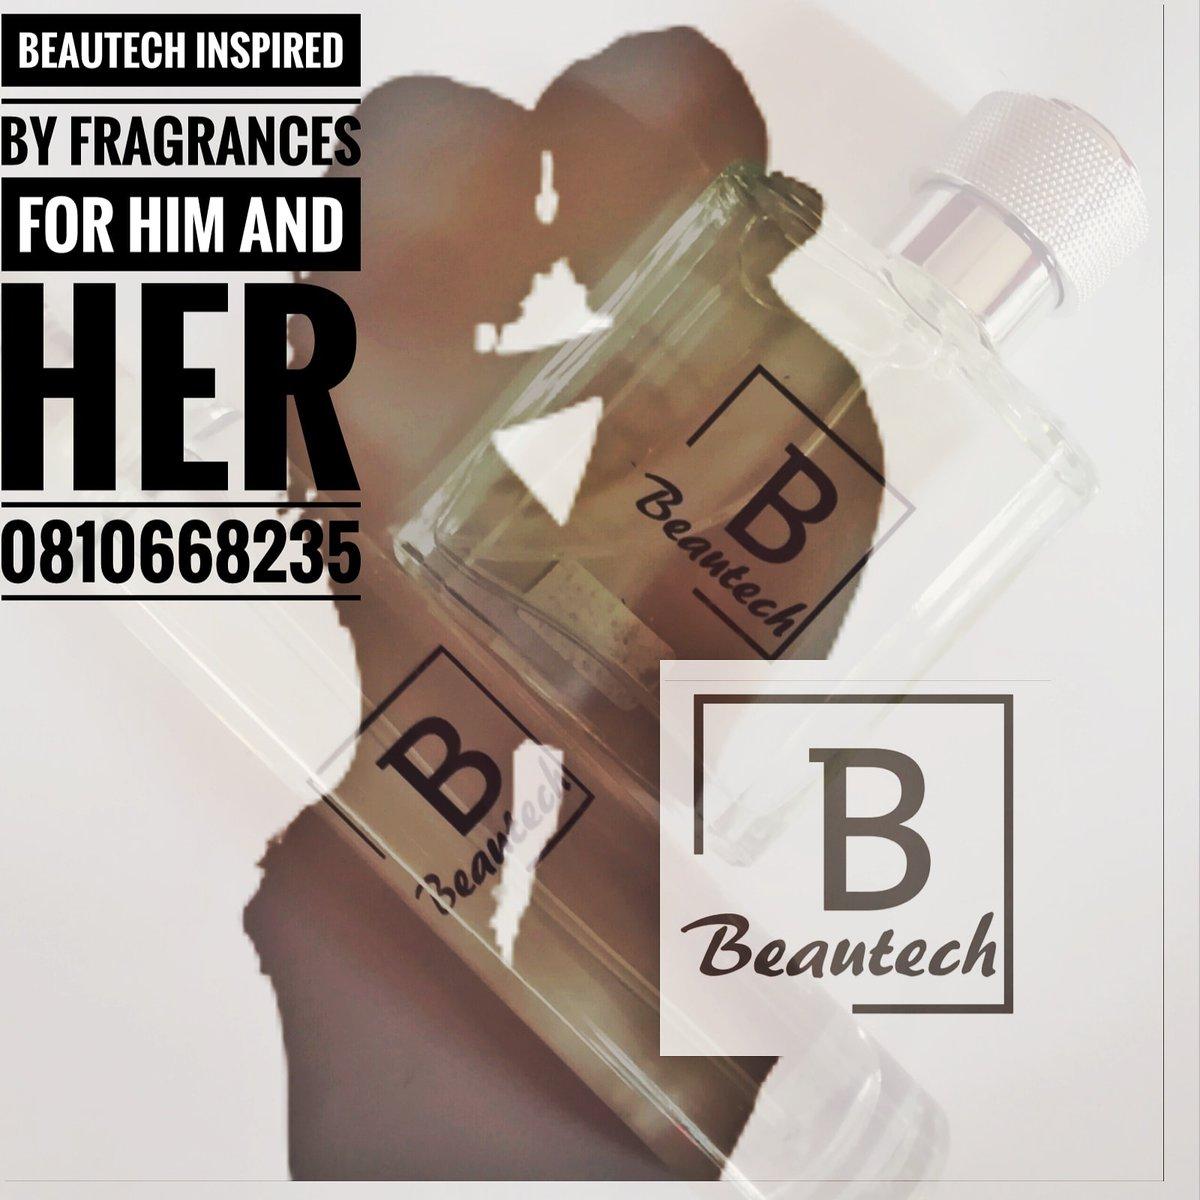 Beautech Inspired by Fragrances 65mls-R180 excluding del. 50mls-R120 excluding del. Contact- 0810668235 for all orders and list of Fragrance. #BeautechFemale #BeautechPerfumes #BeautechInspiredBy #BeautechMale  #perfume #perfumeaddict #perfumelovers  #perfumefollowsyou